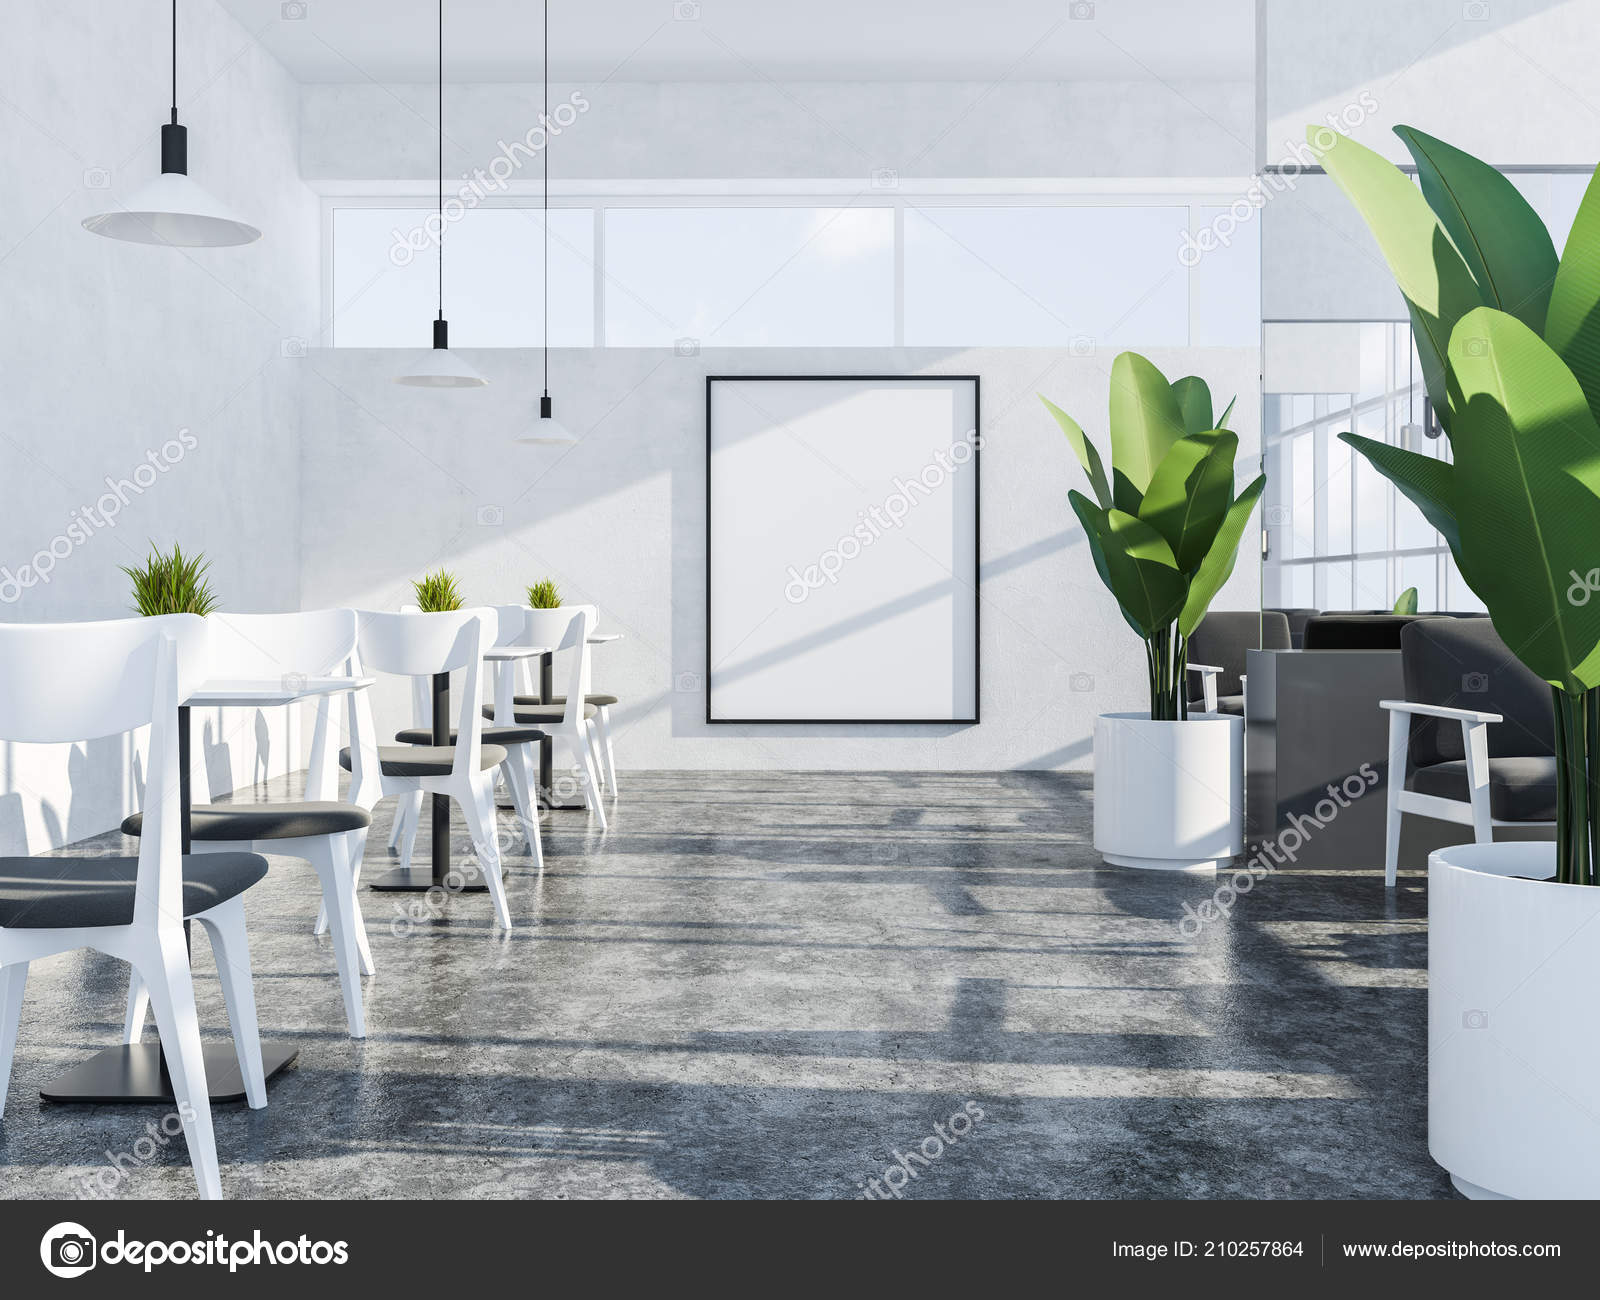 White Wall Coffee Shop Interior Concrete Floor Large Windows White